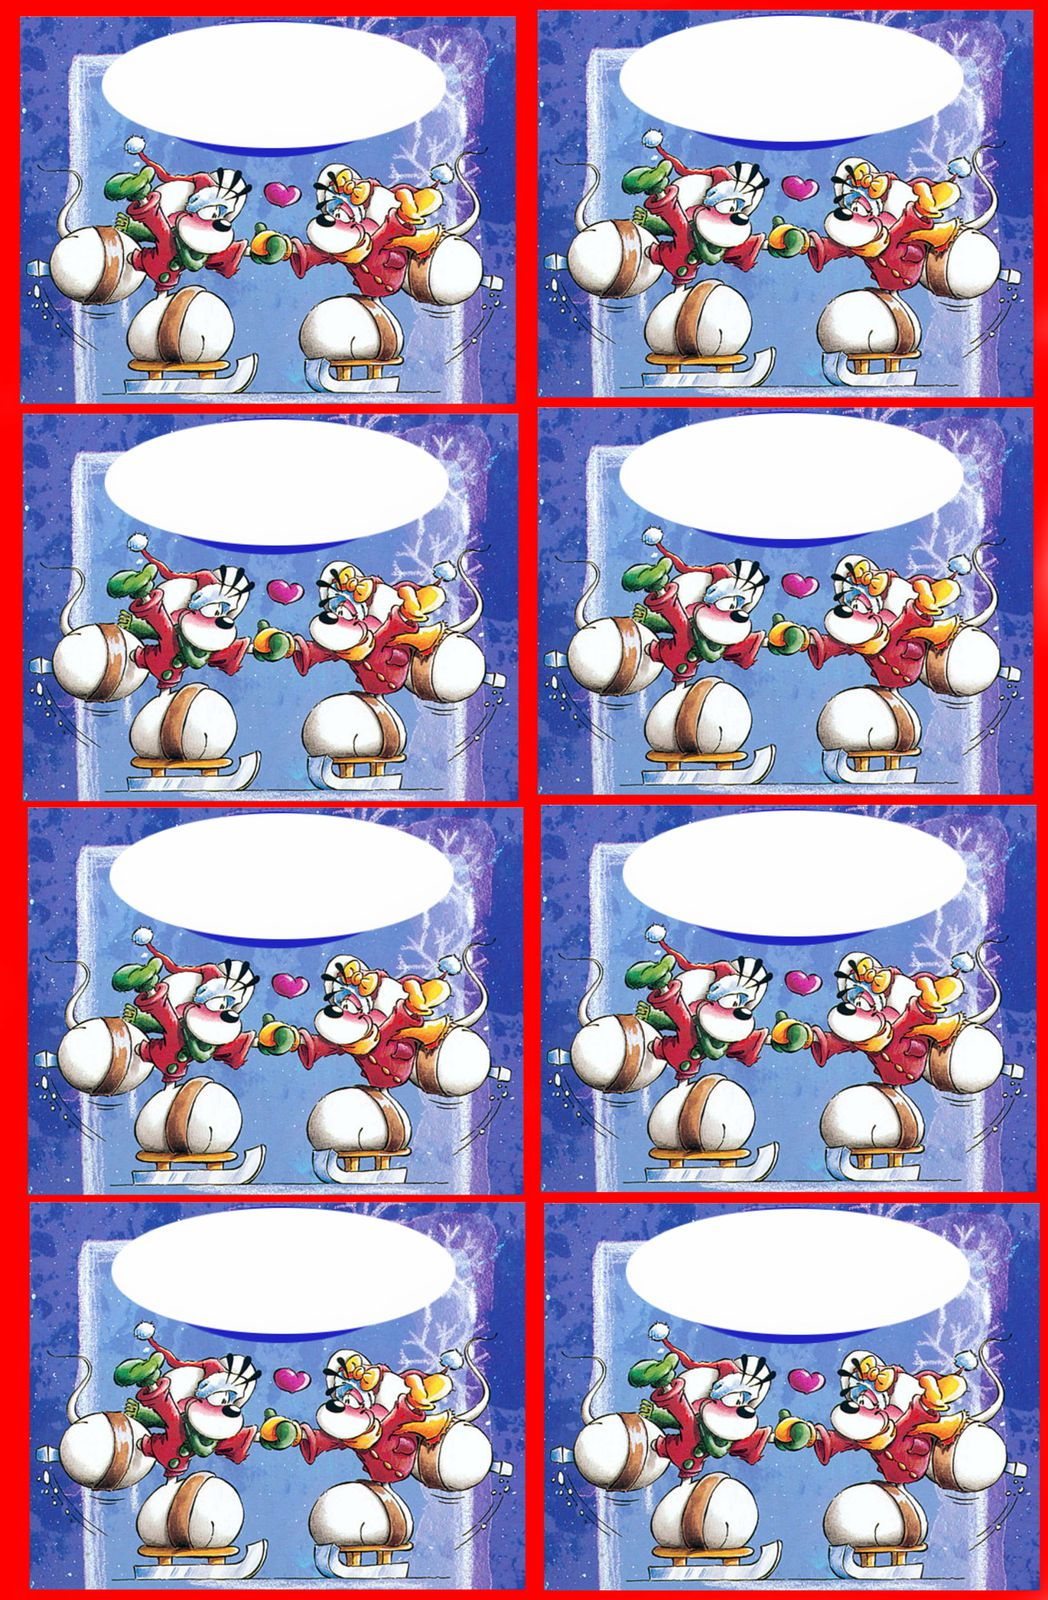 tiquette cadeau noel fiche technique activit enfant papa christmass disney gif blinkies menu. Black Bedroom Furniture Sets. Home Design Ideas